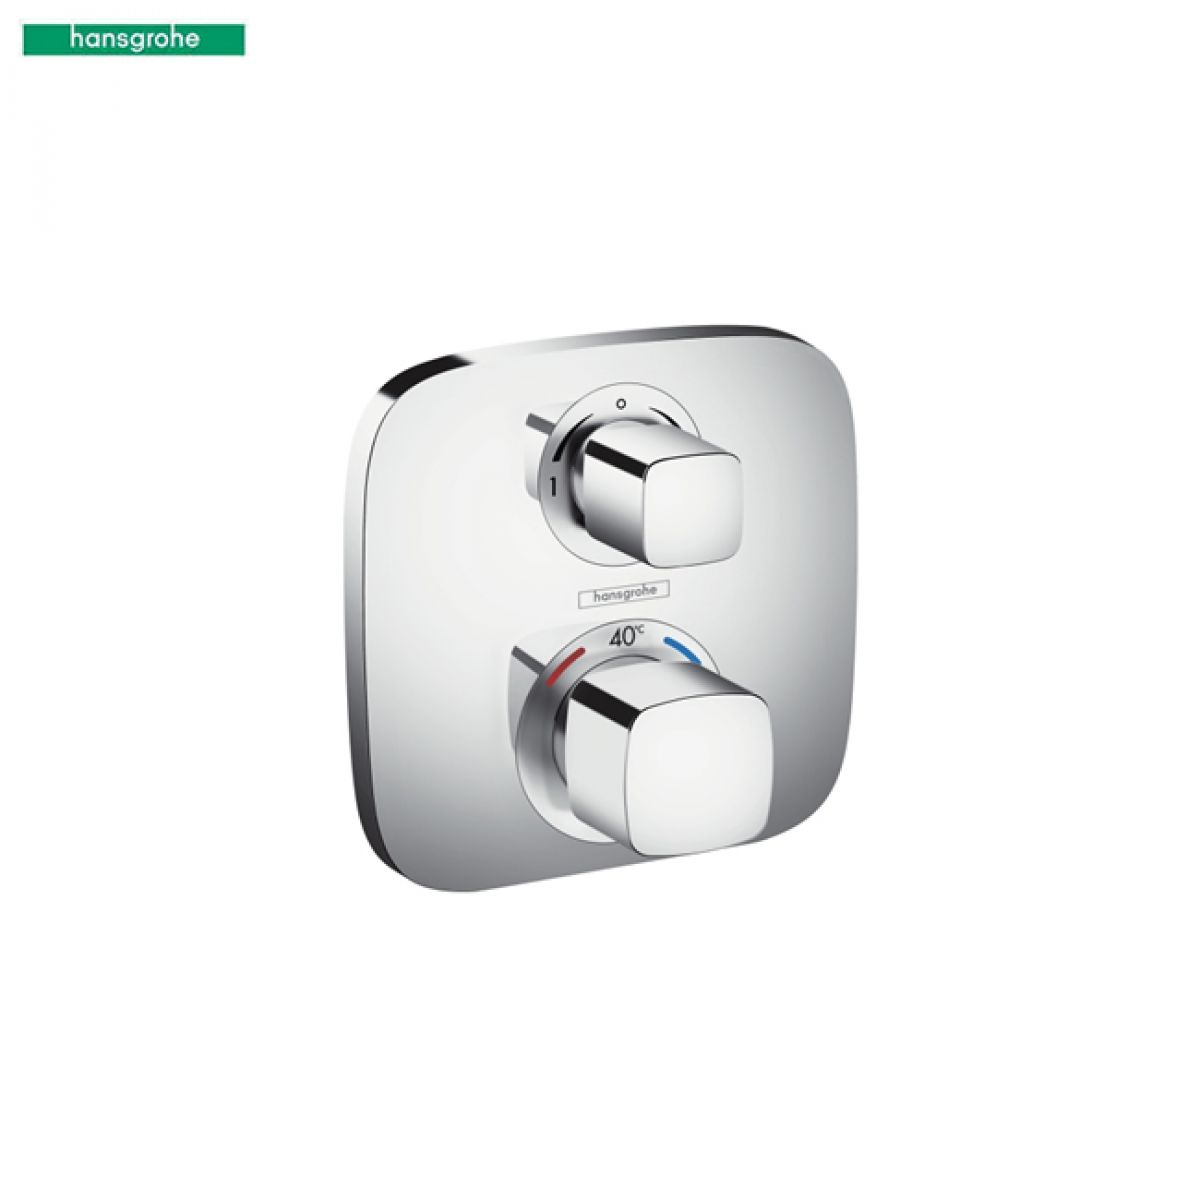 hansgrohe ecostat e shower valve with shut off